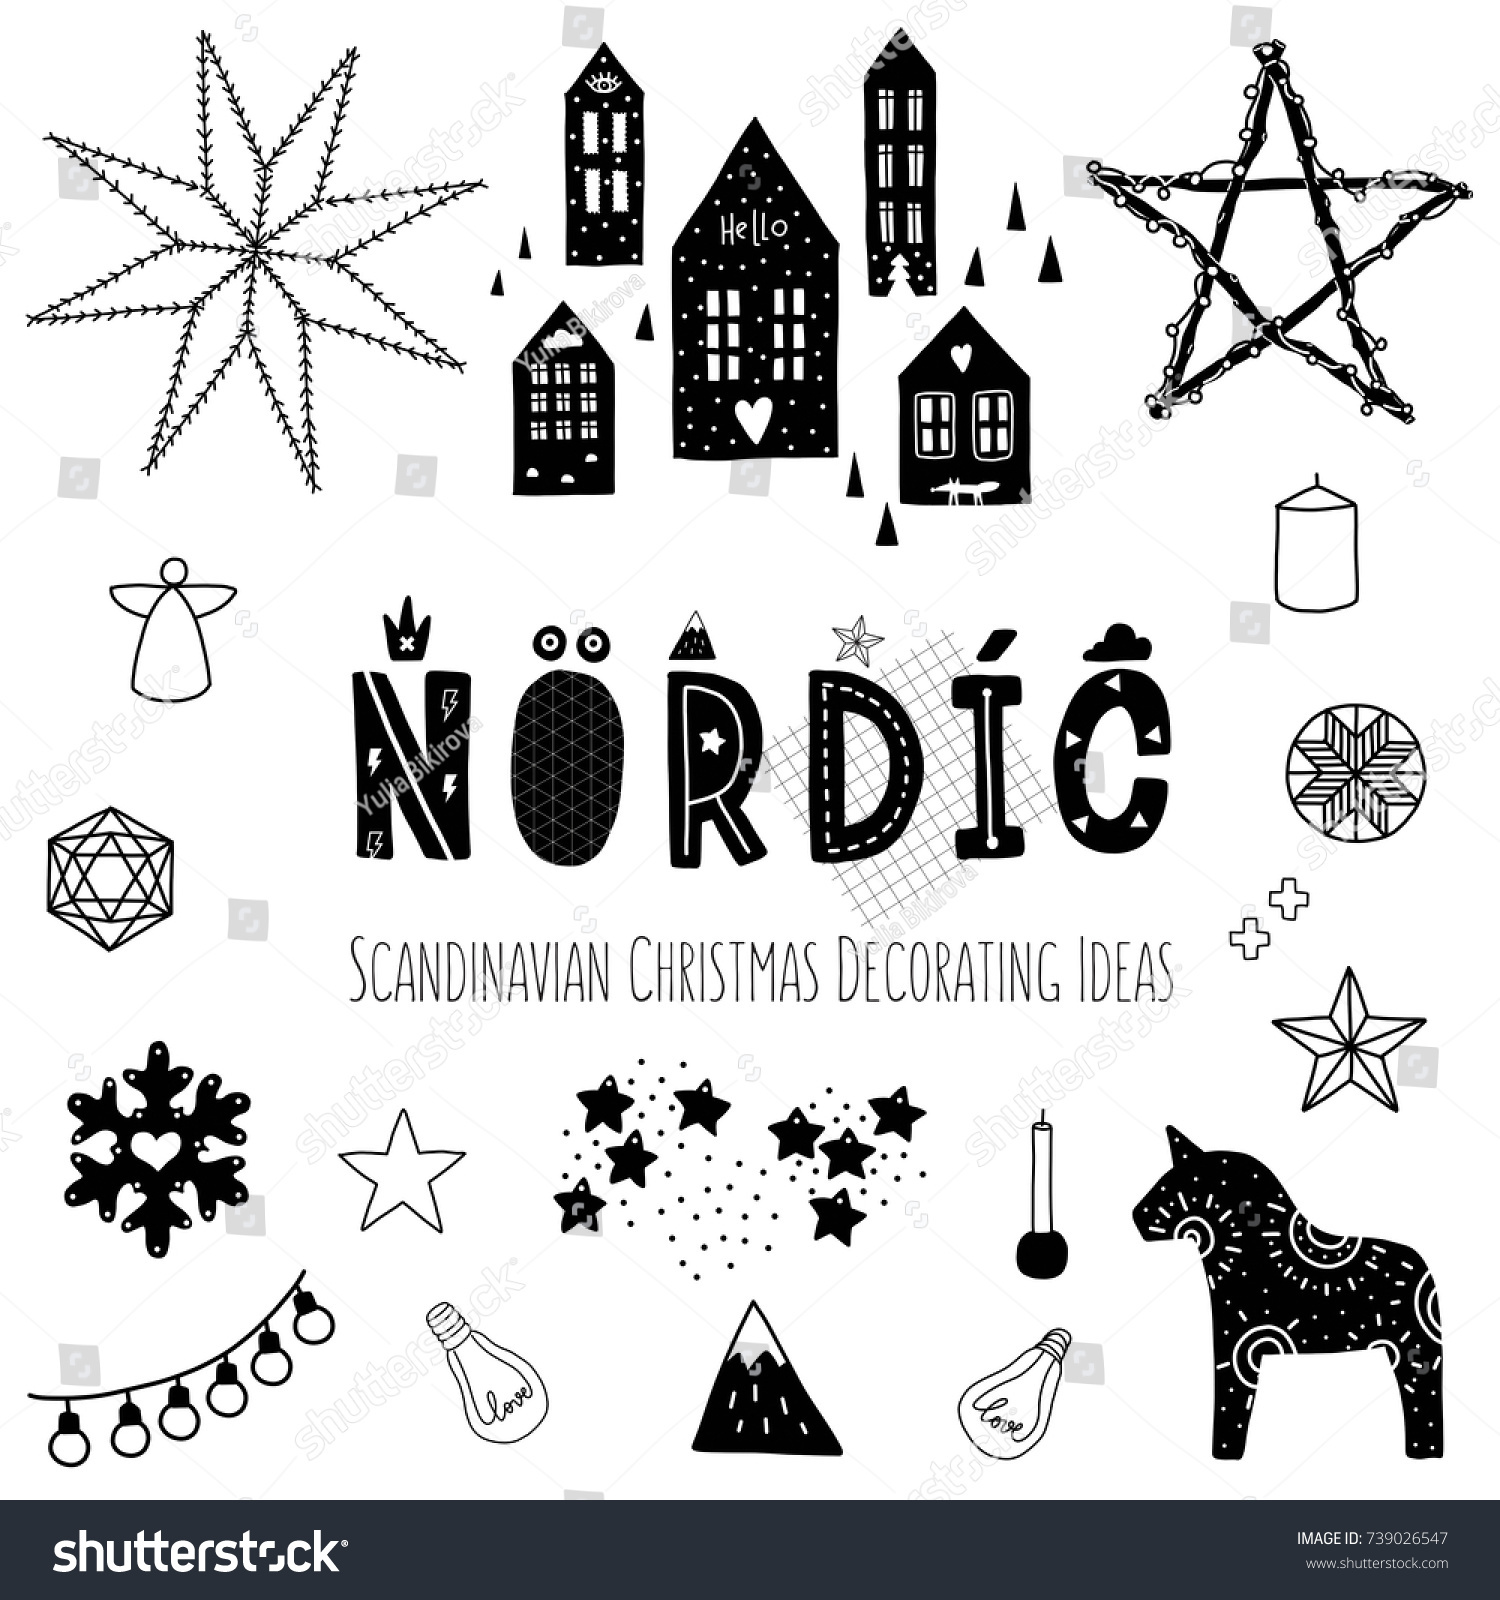 Christmas Nordic Norse Black White Black Stock Vector (Royalty Free ...